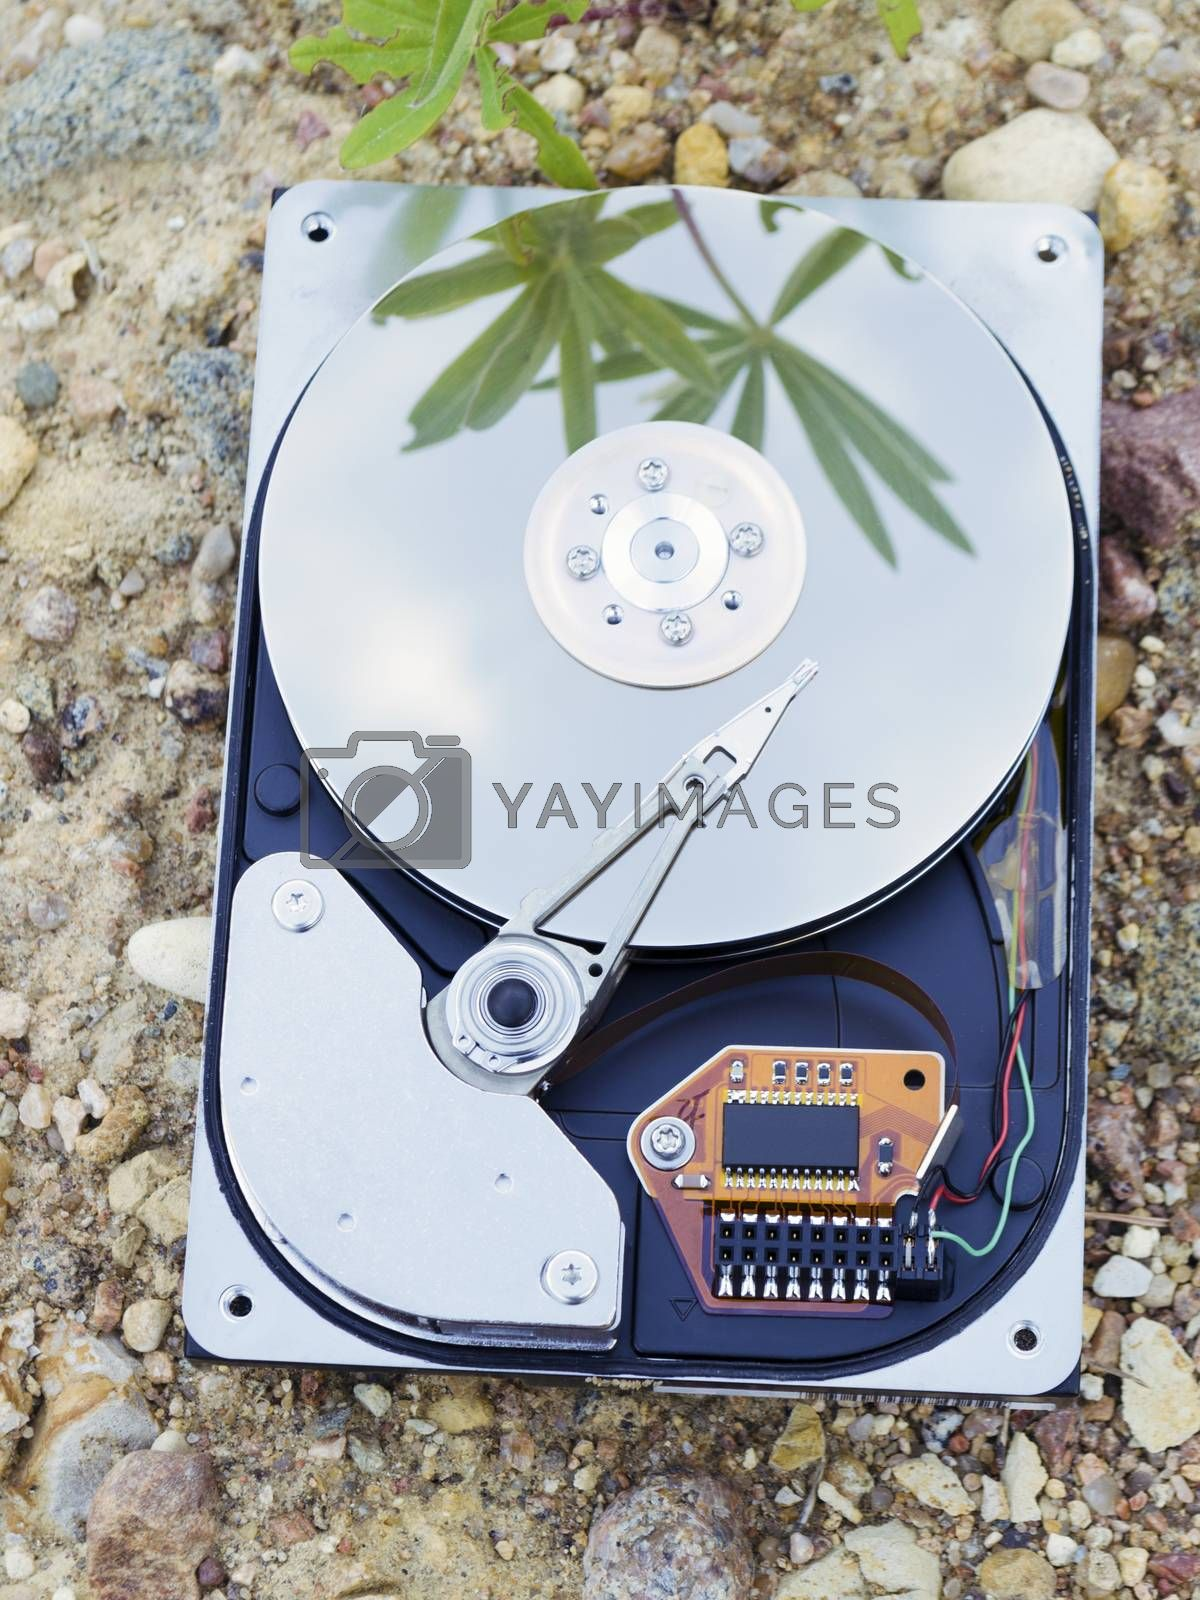 Hard Drive storage lays on the ground with sky and green plant reflection